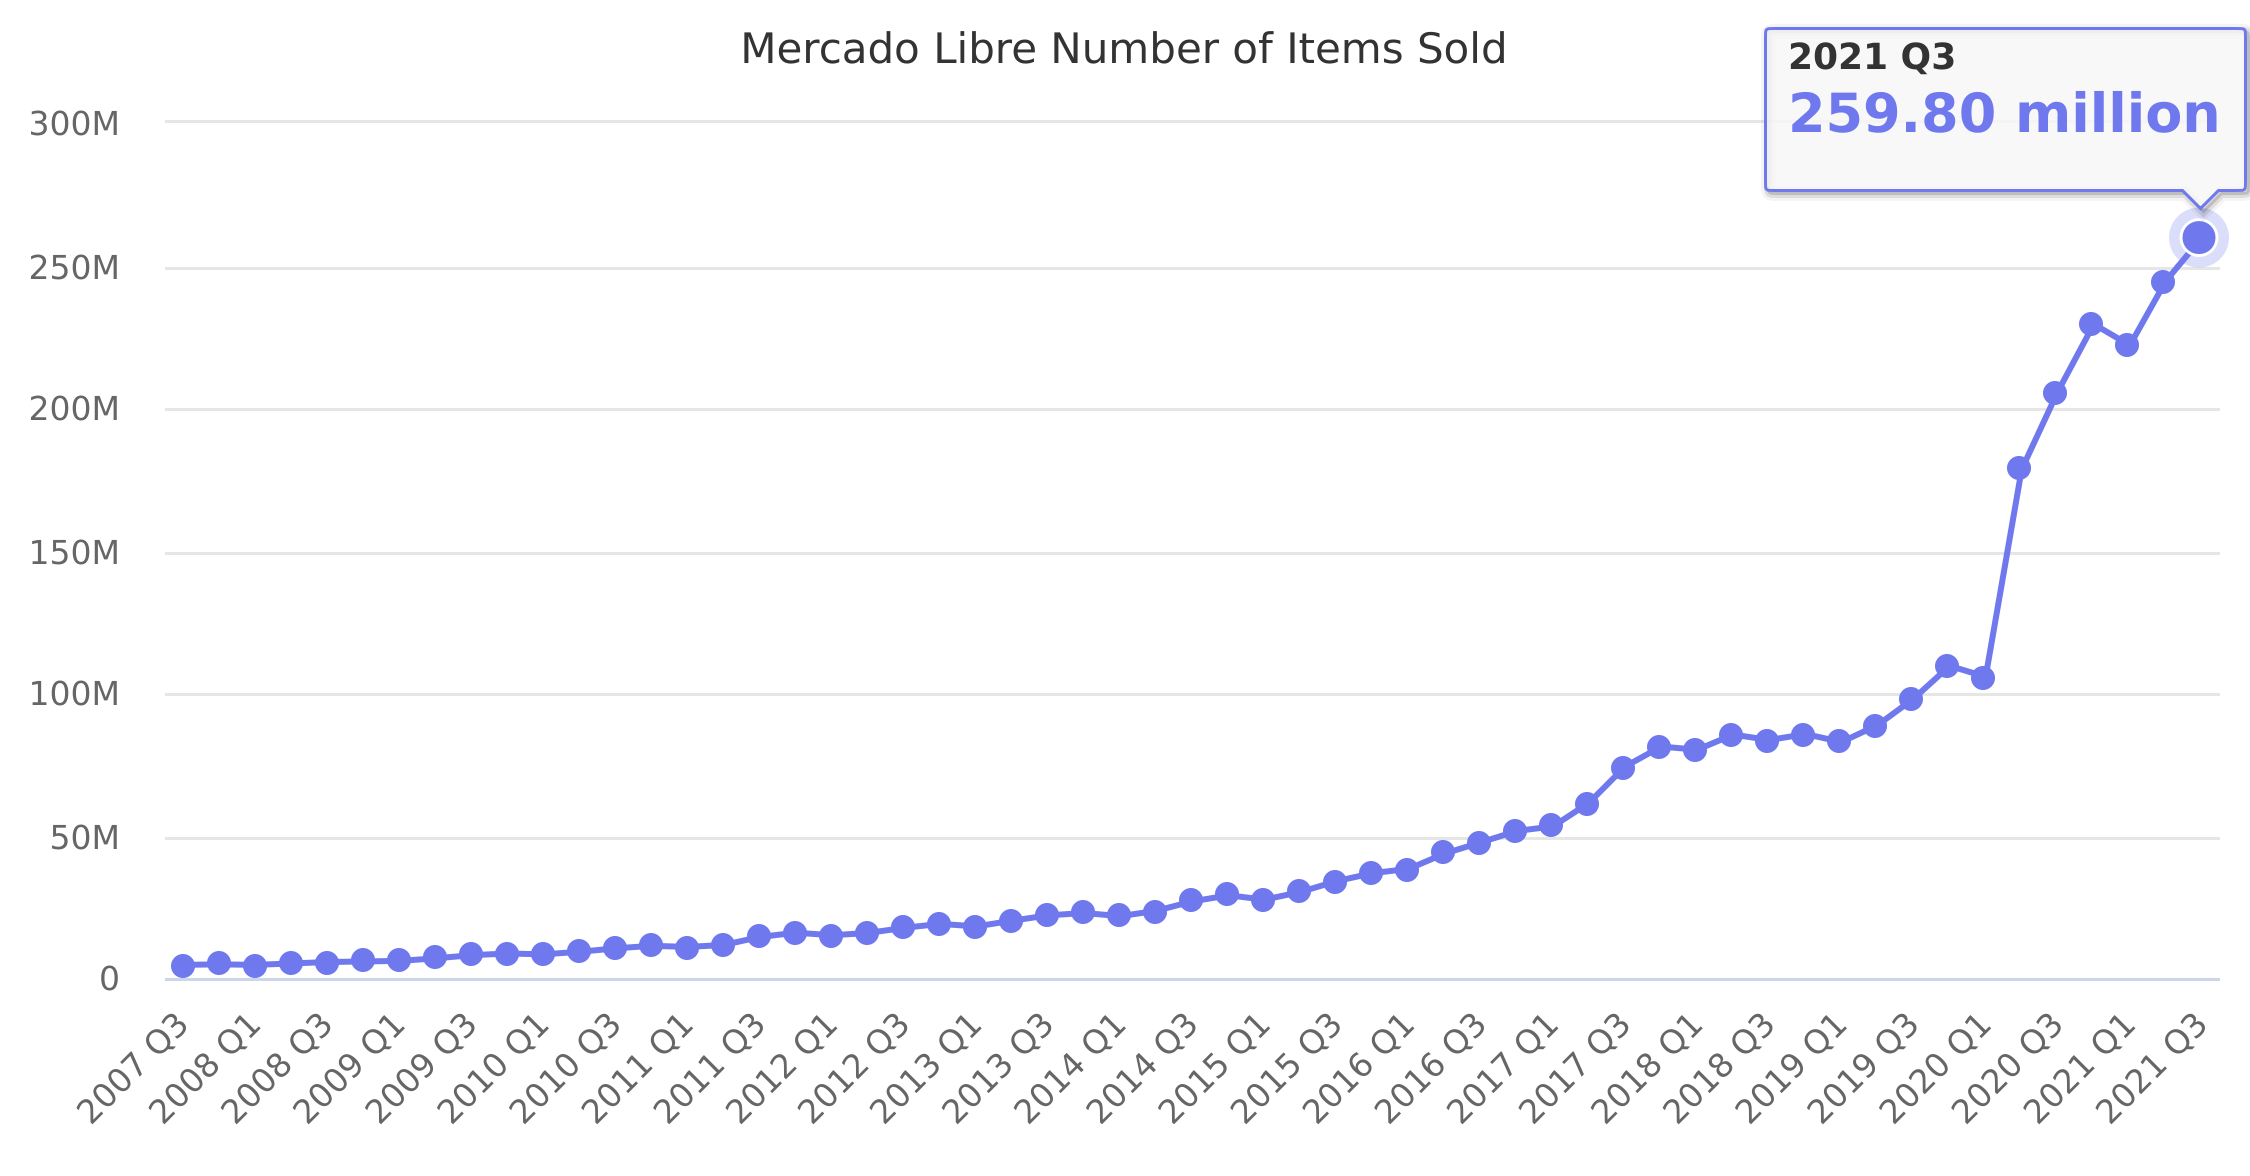 Mercado Libre Number of Items Sold 2007-2019